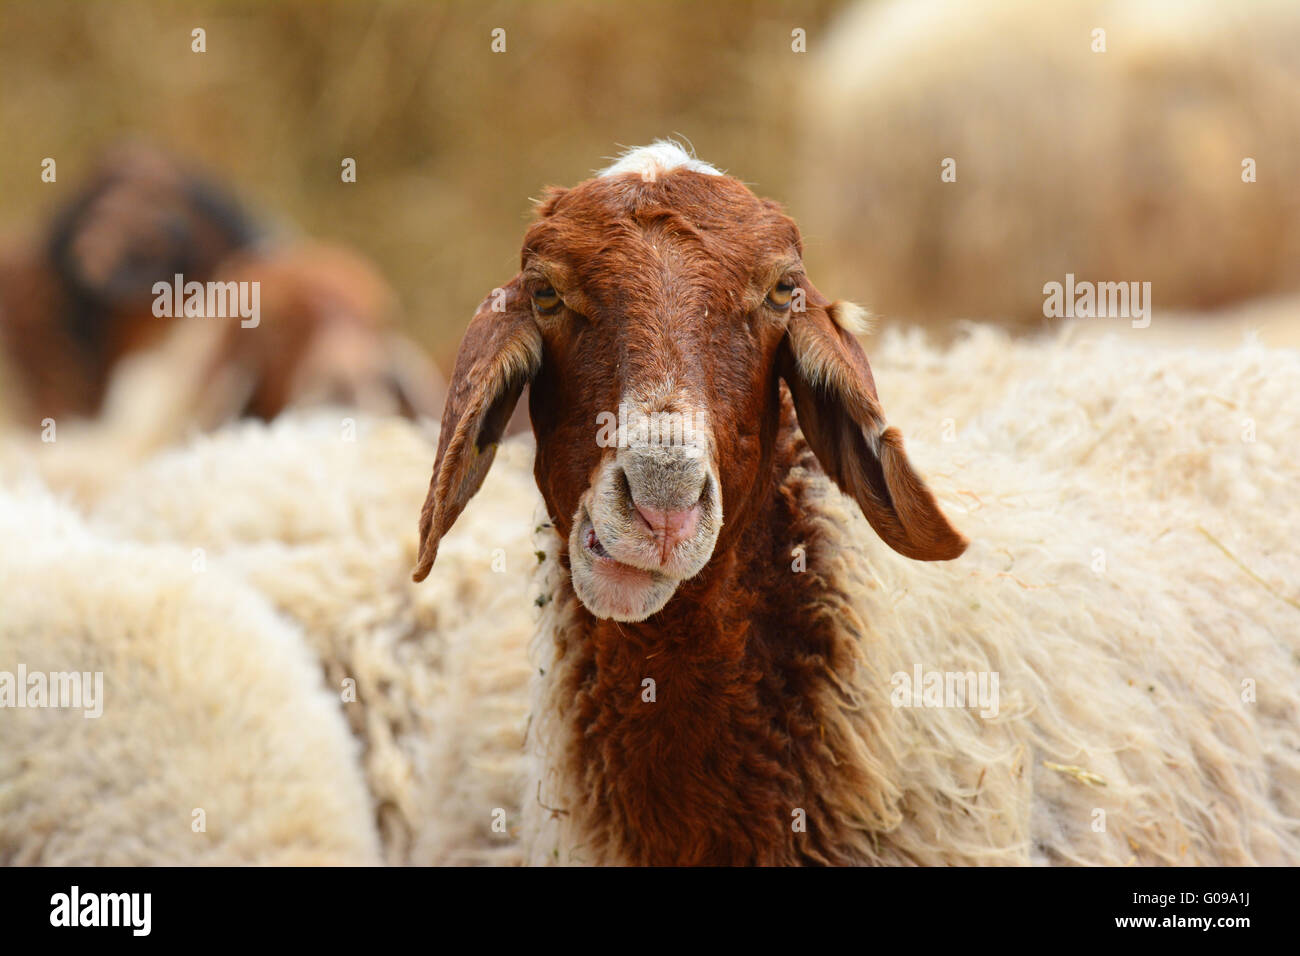 Funny sheep portrait - Stock Image